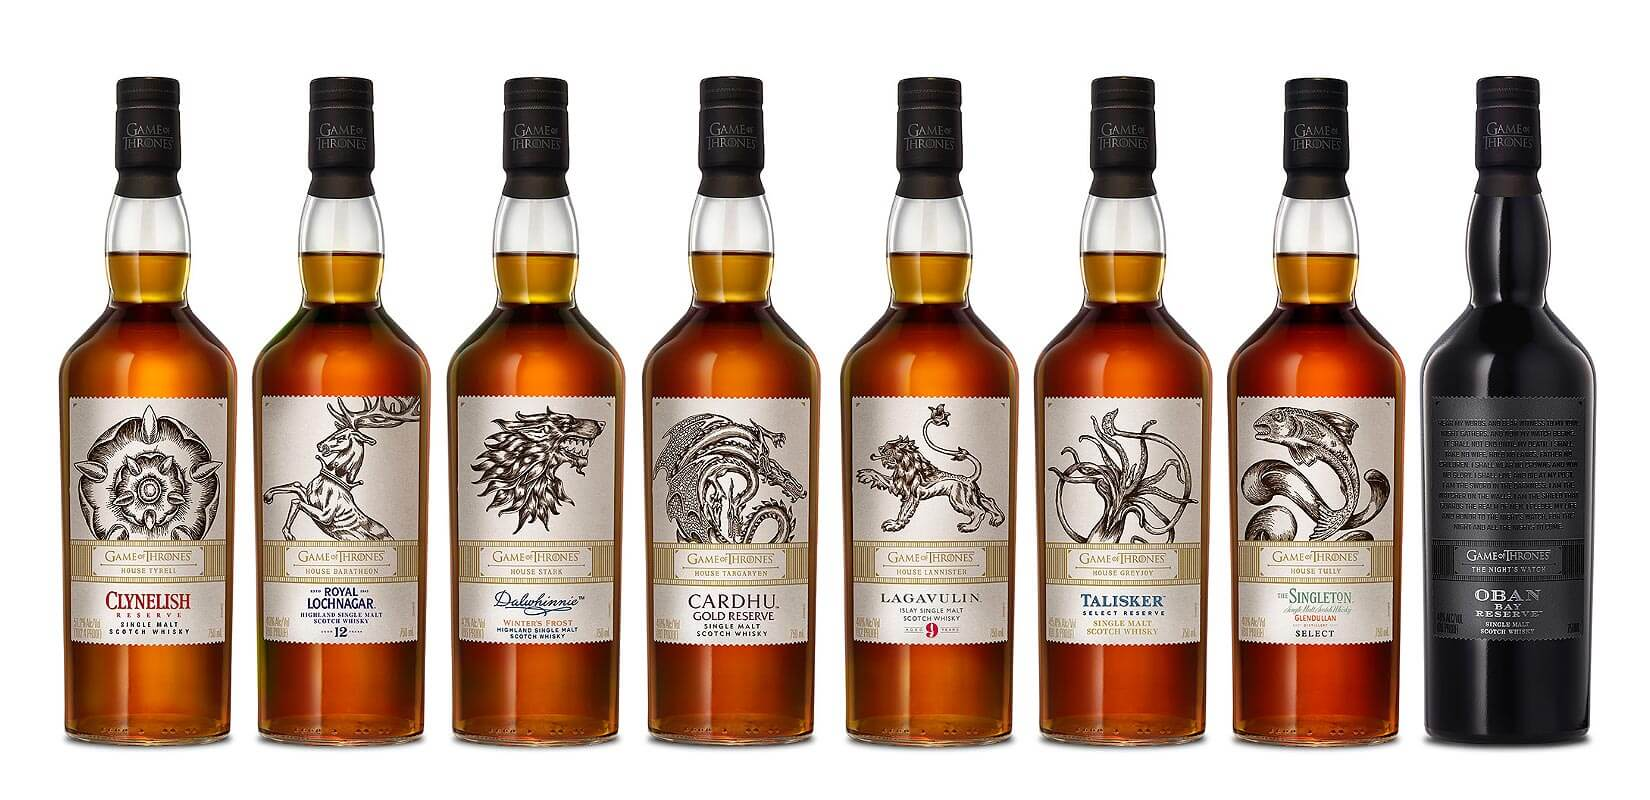 Game of Thrones Single Malt Scotch Whisky Collection, bottles on white